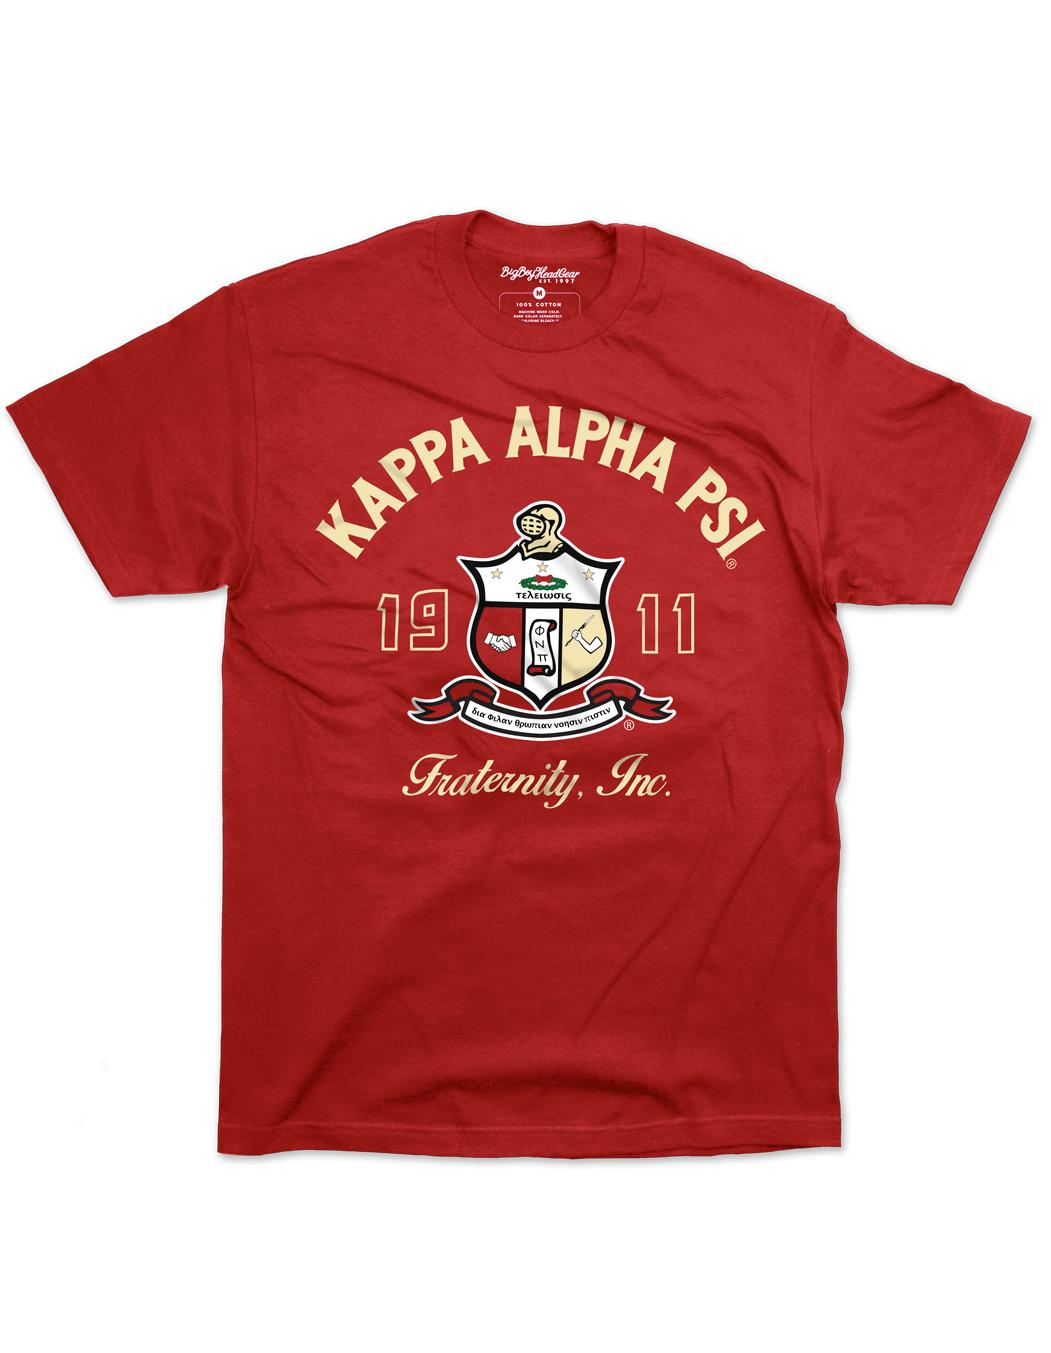 Kappa Alpha Psi apparel - Graphic Tee